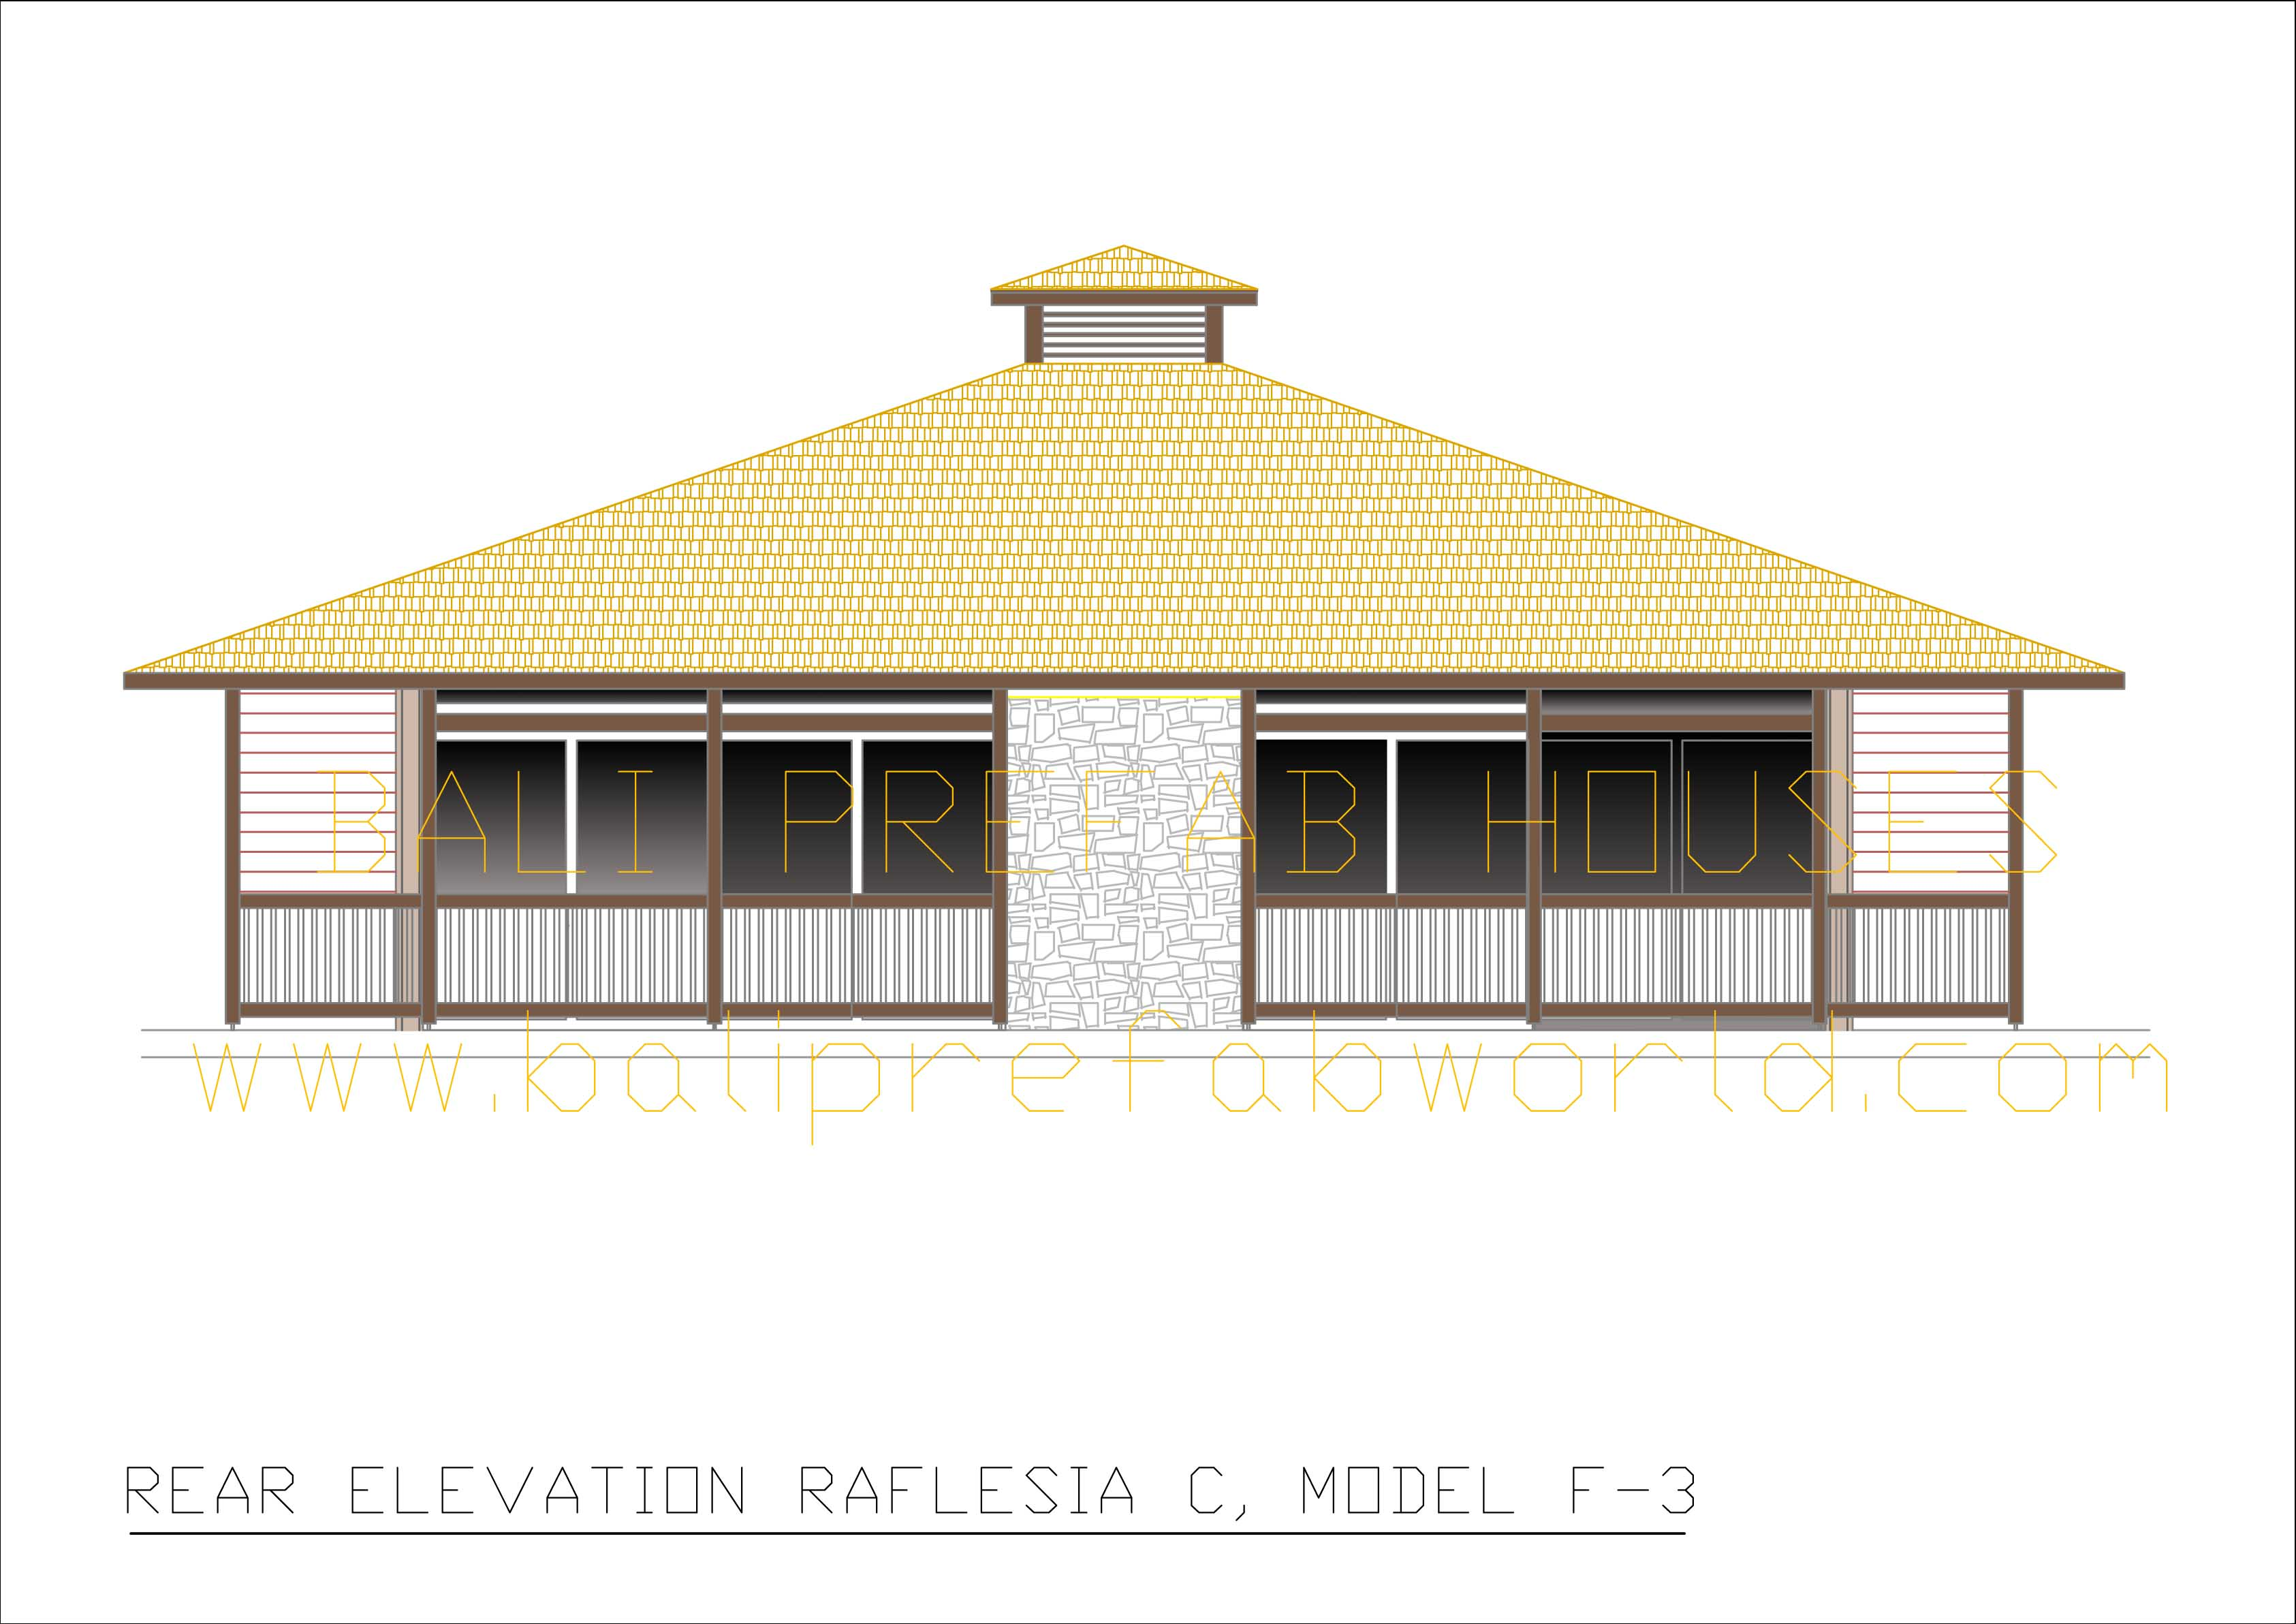 Raflesia-C rear elevation